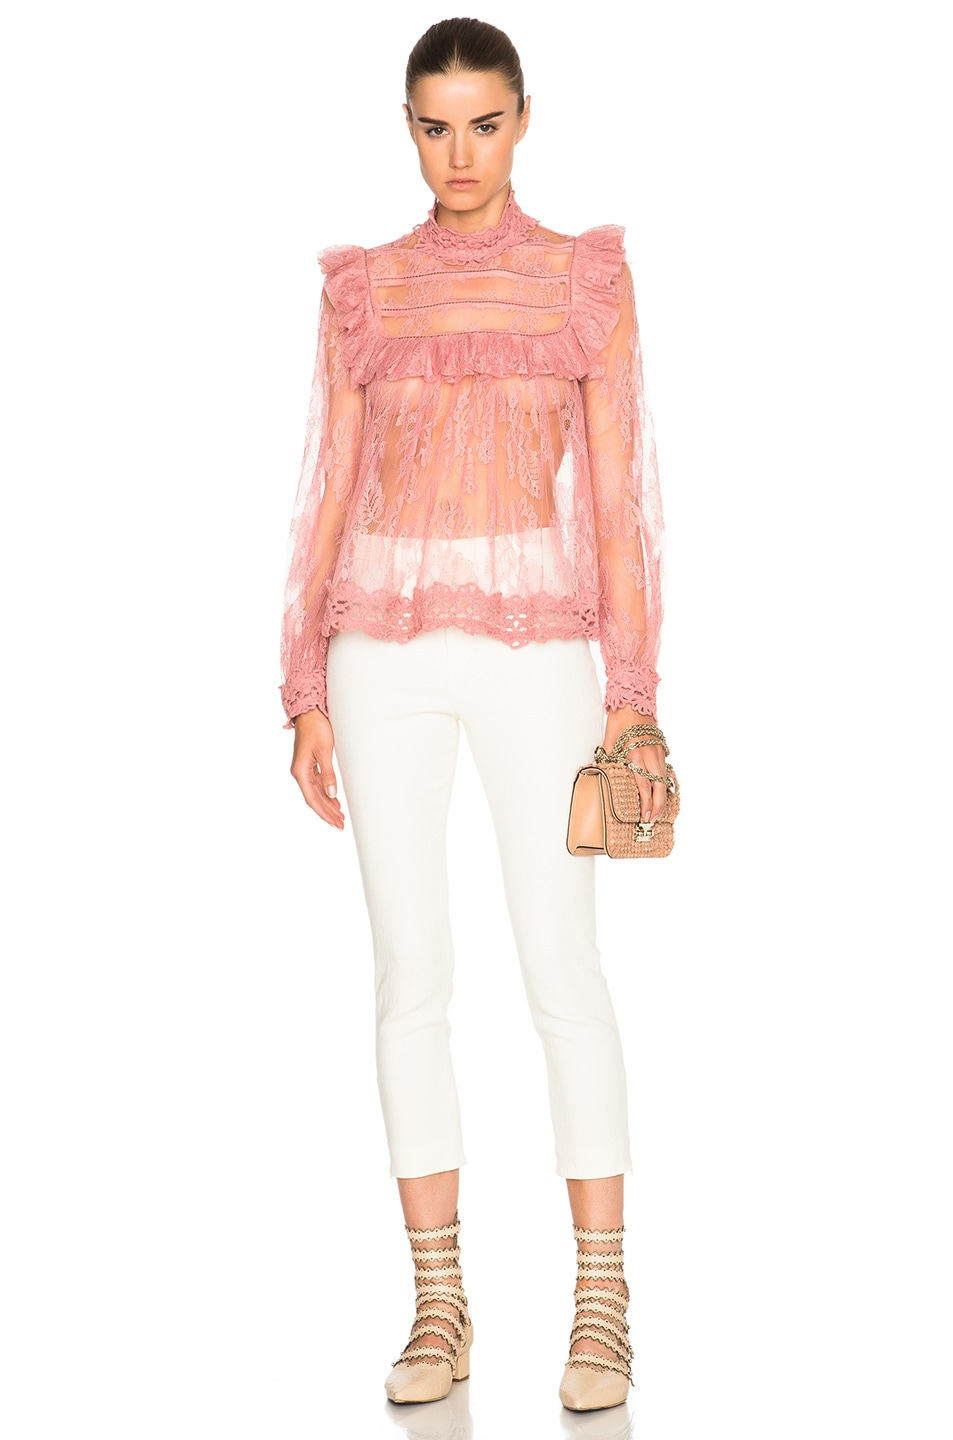 6a6af2ed89fec5 Image 5 of Zimmermann Mischief Lace Top in Peony